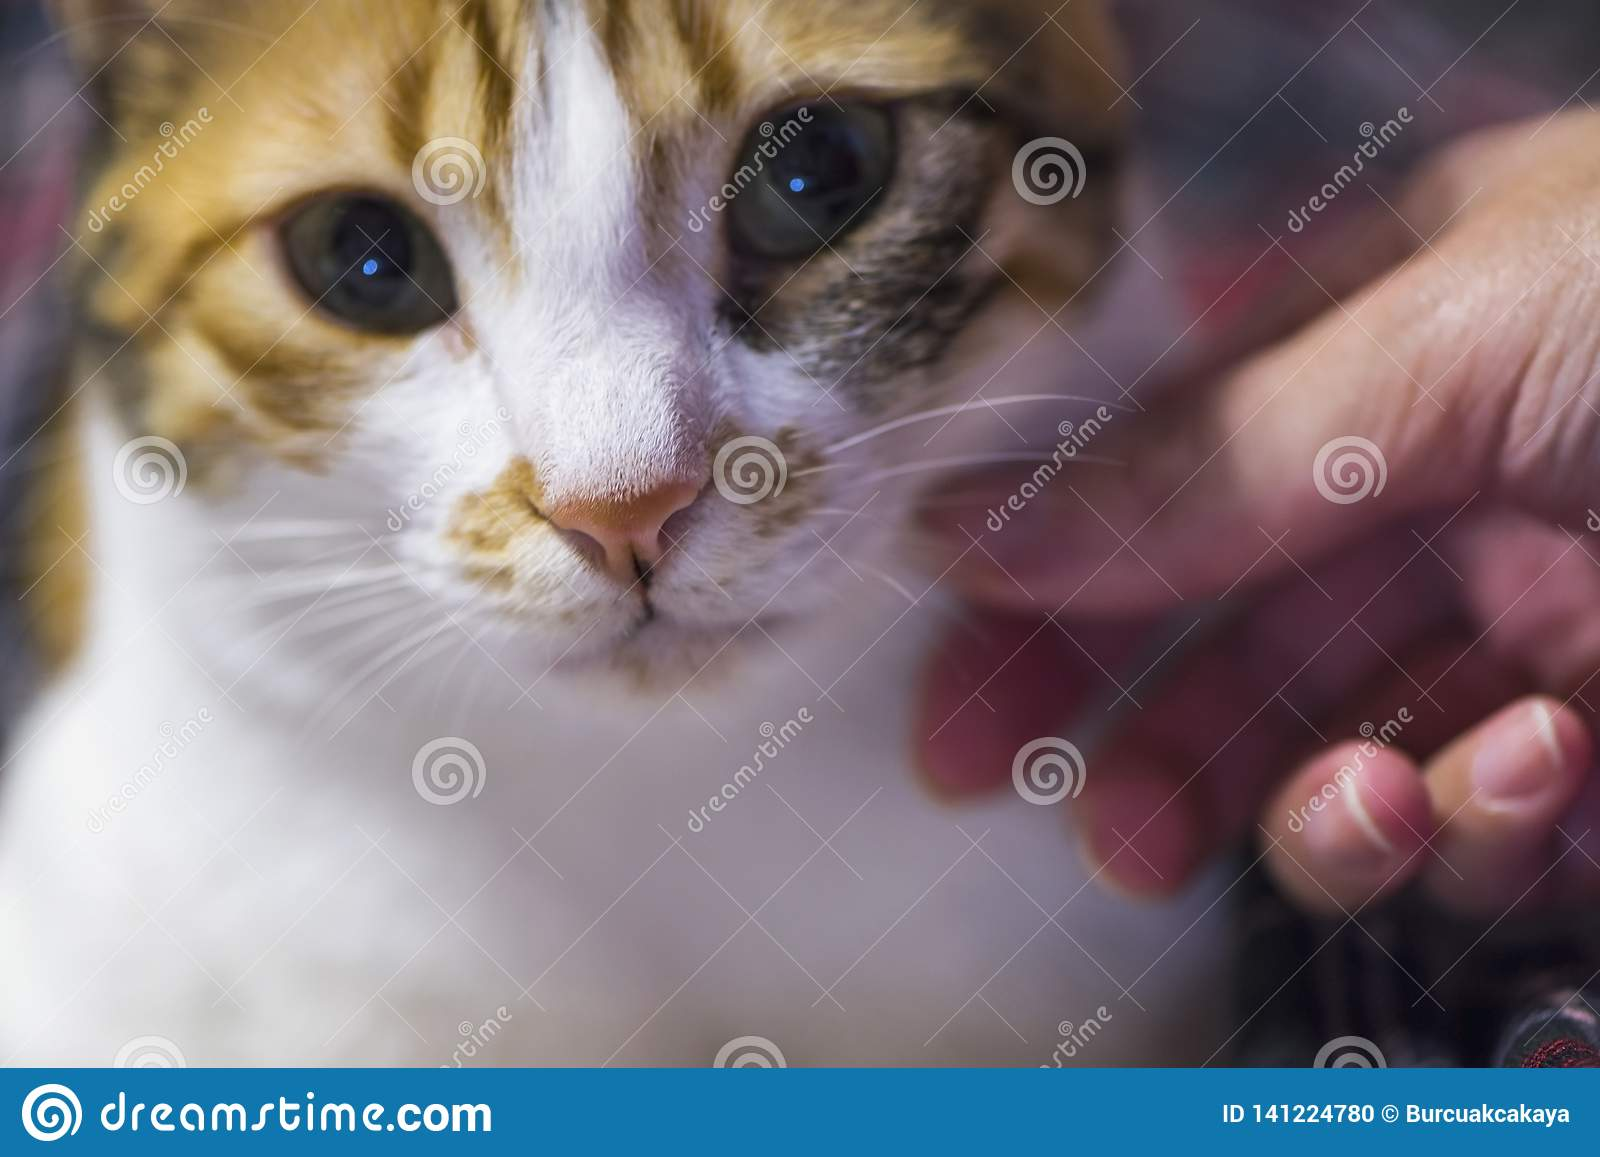 Female hand caress her calico cat softly, close up, indoor